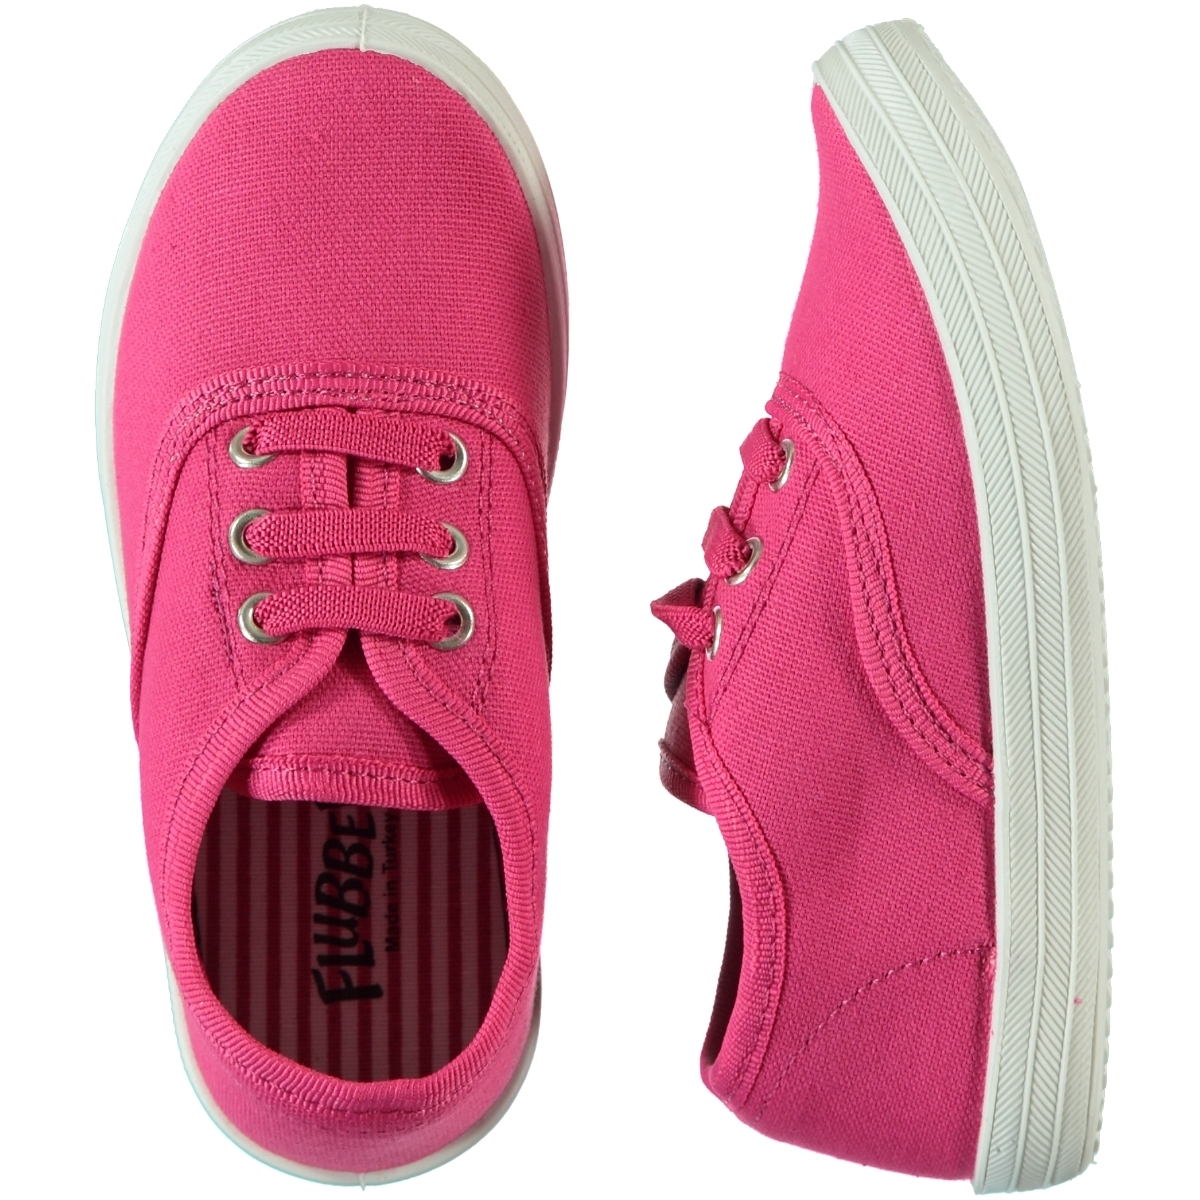 Flubber Fuchsia Shoes Girl Boy 26-30 Number